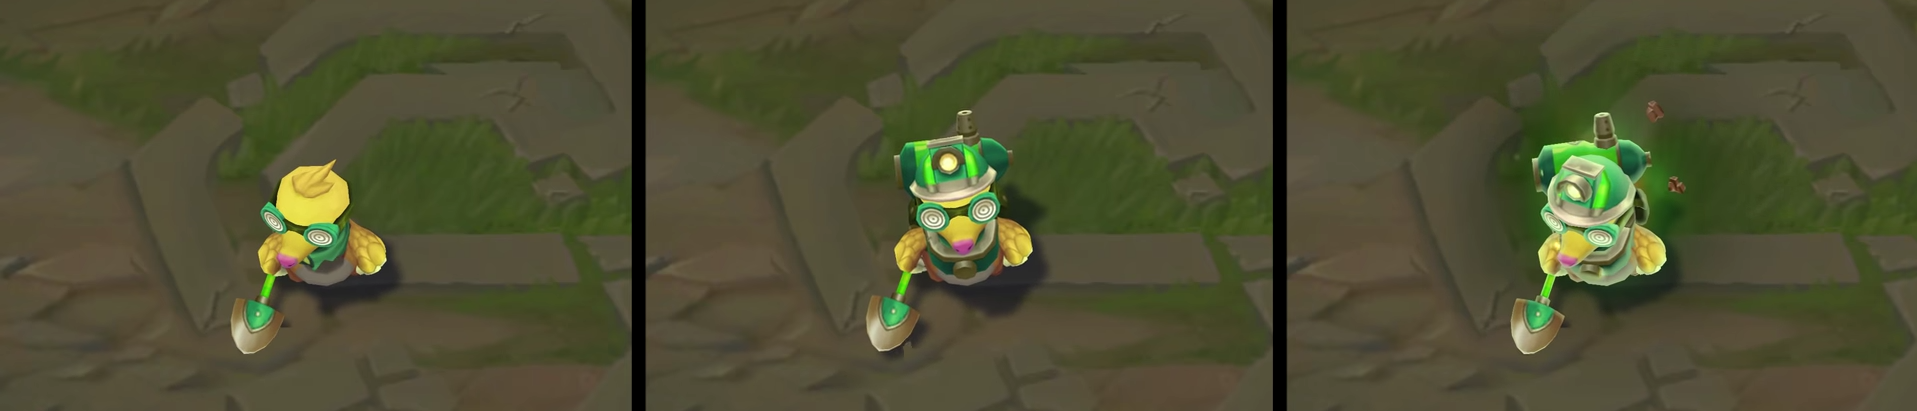 Teamfight Tactics: [TFT] Here is everything you need to know